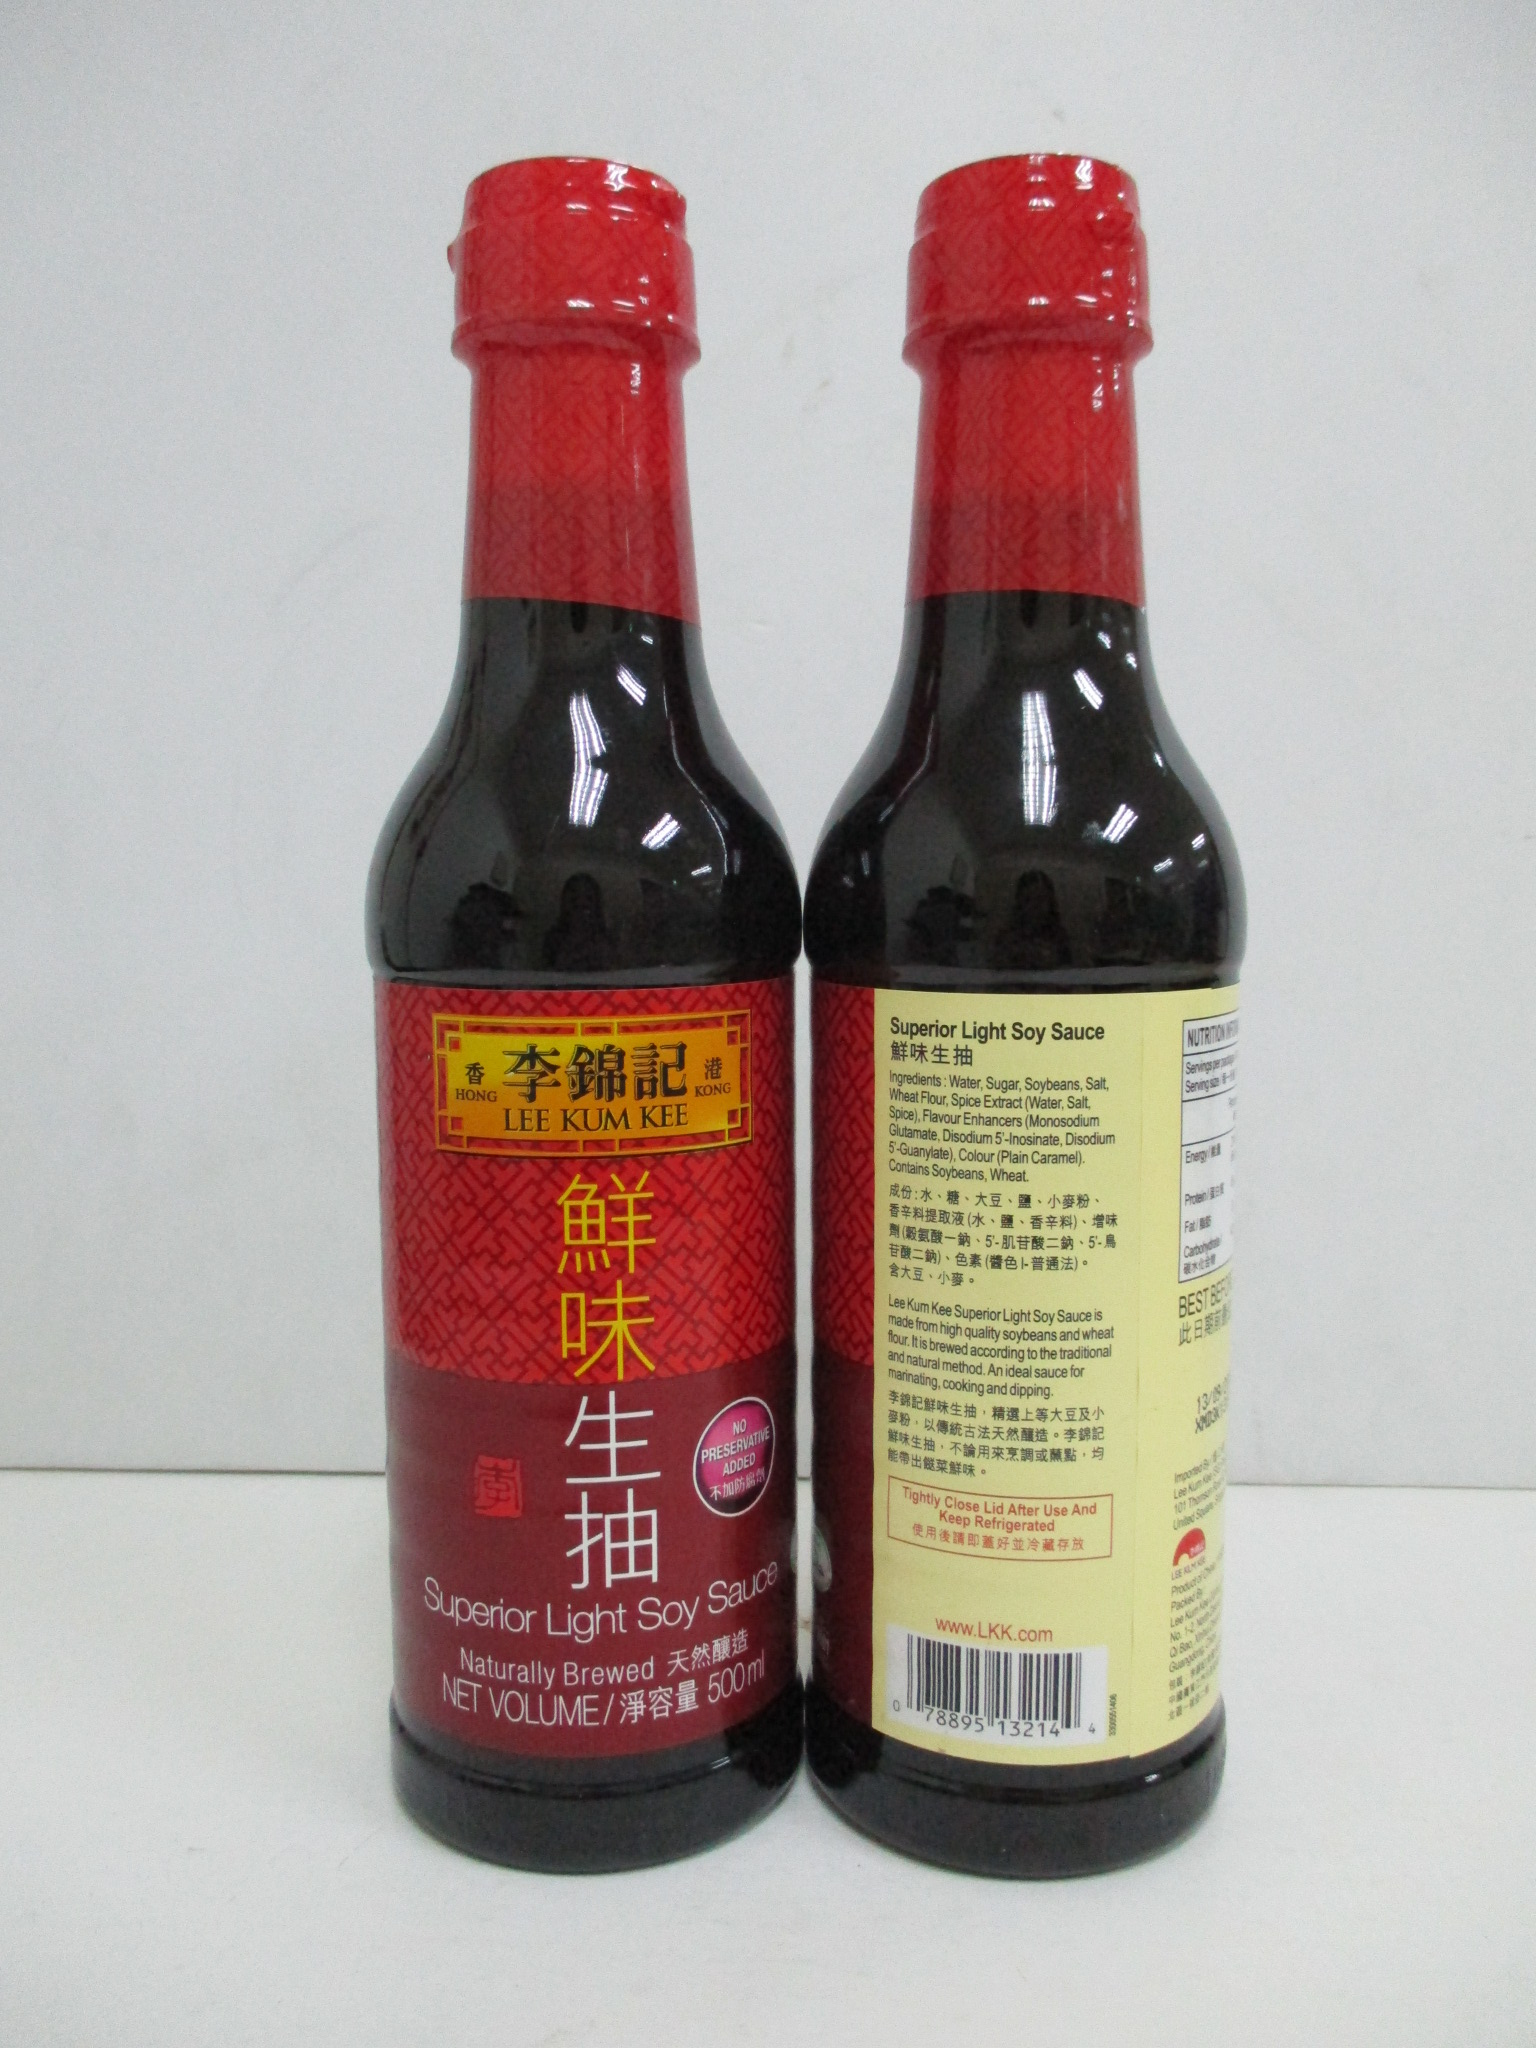 LKK Superior Light Soy Sauce 12 x 500ml